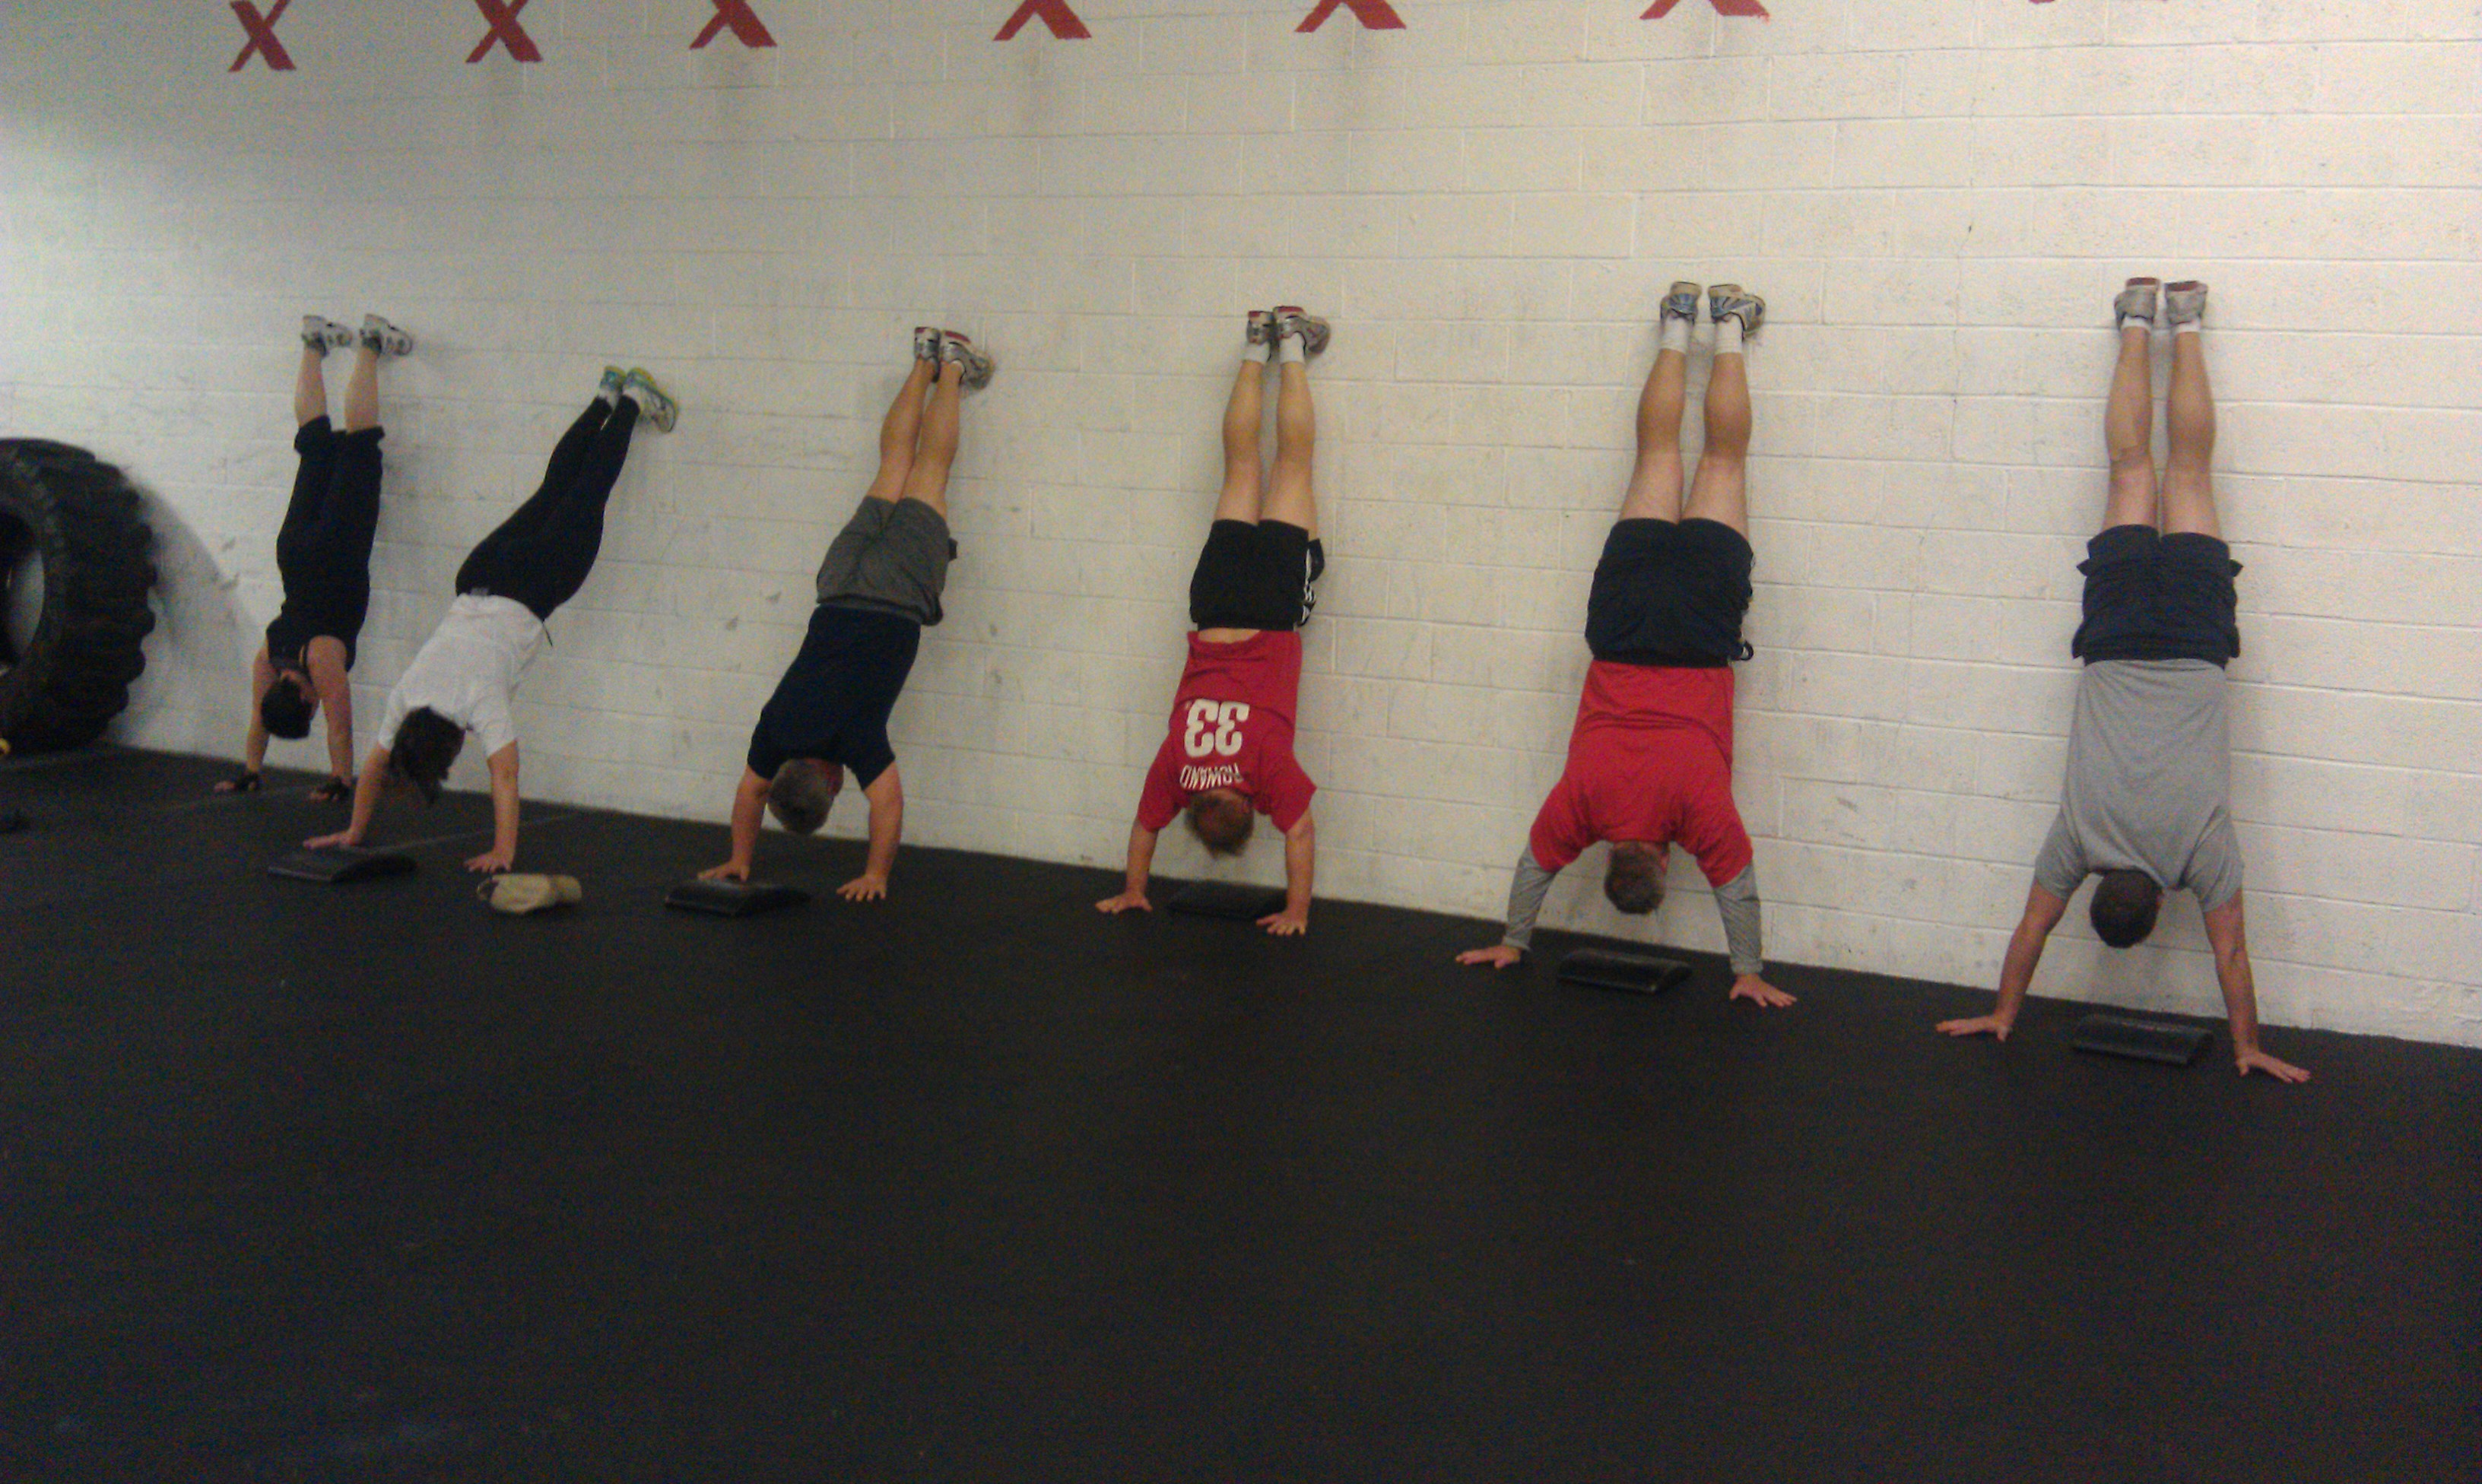 Thursday, August 22 WOD